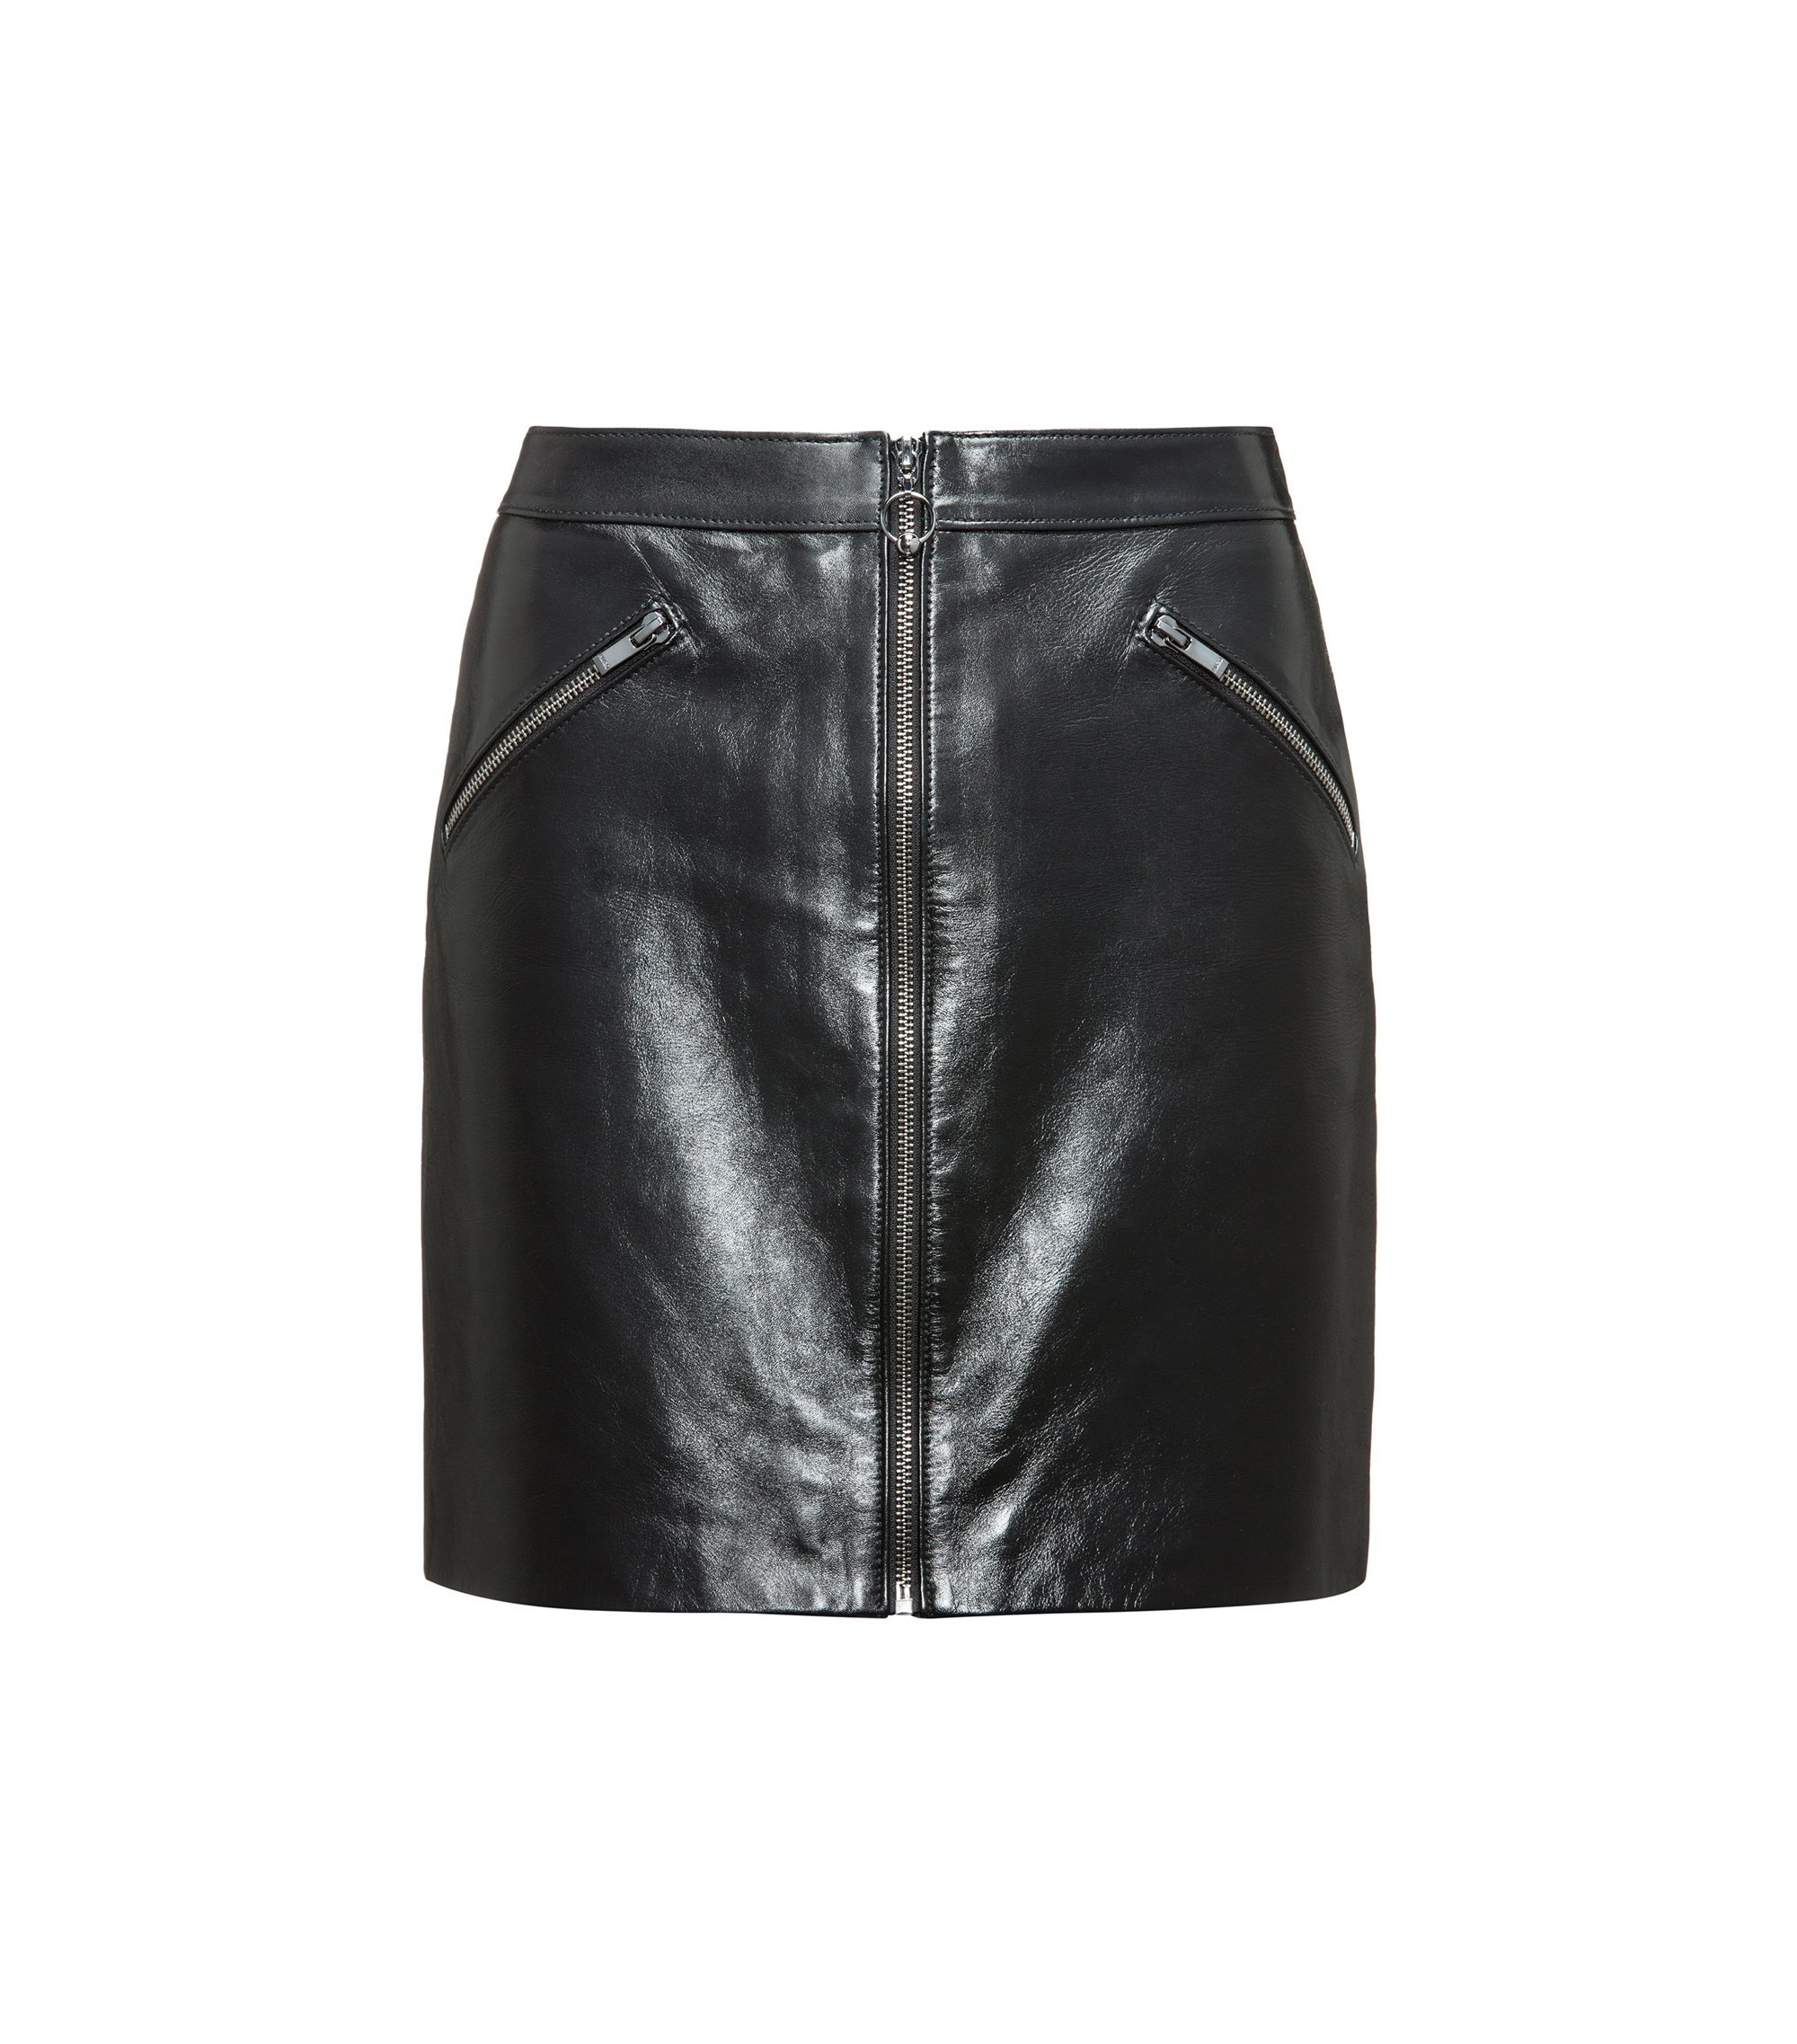 Zip-front mini skirt in high-shine napa leather, Black